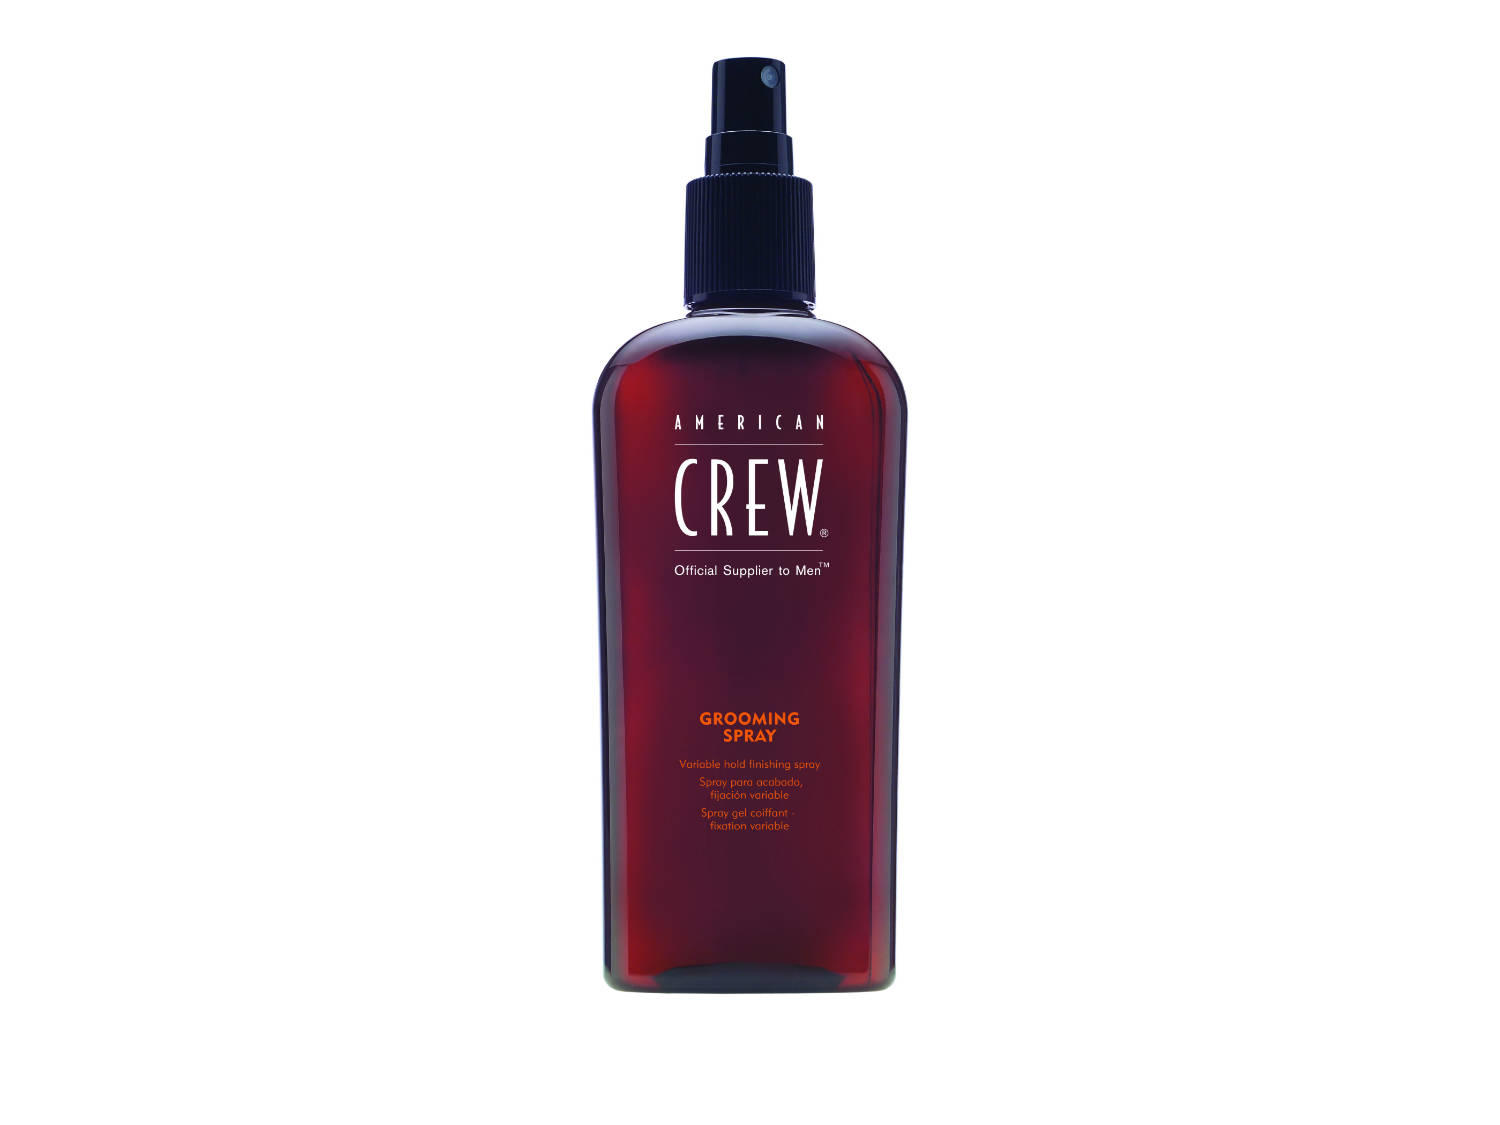 Arma Beauty - American Crew - Grooming Spray